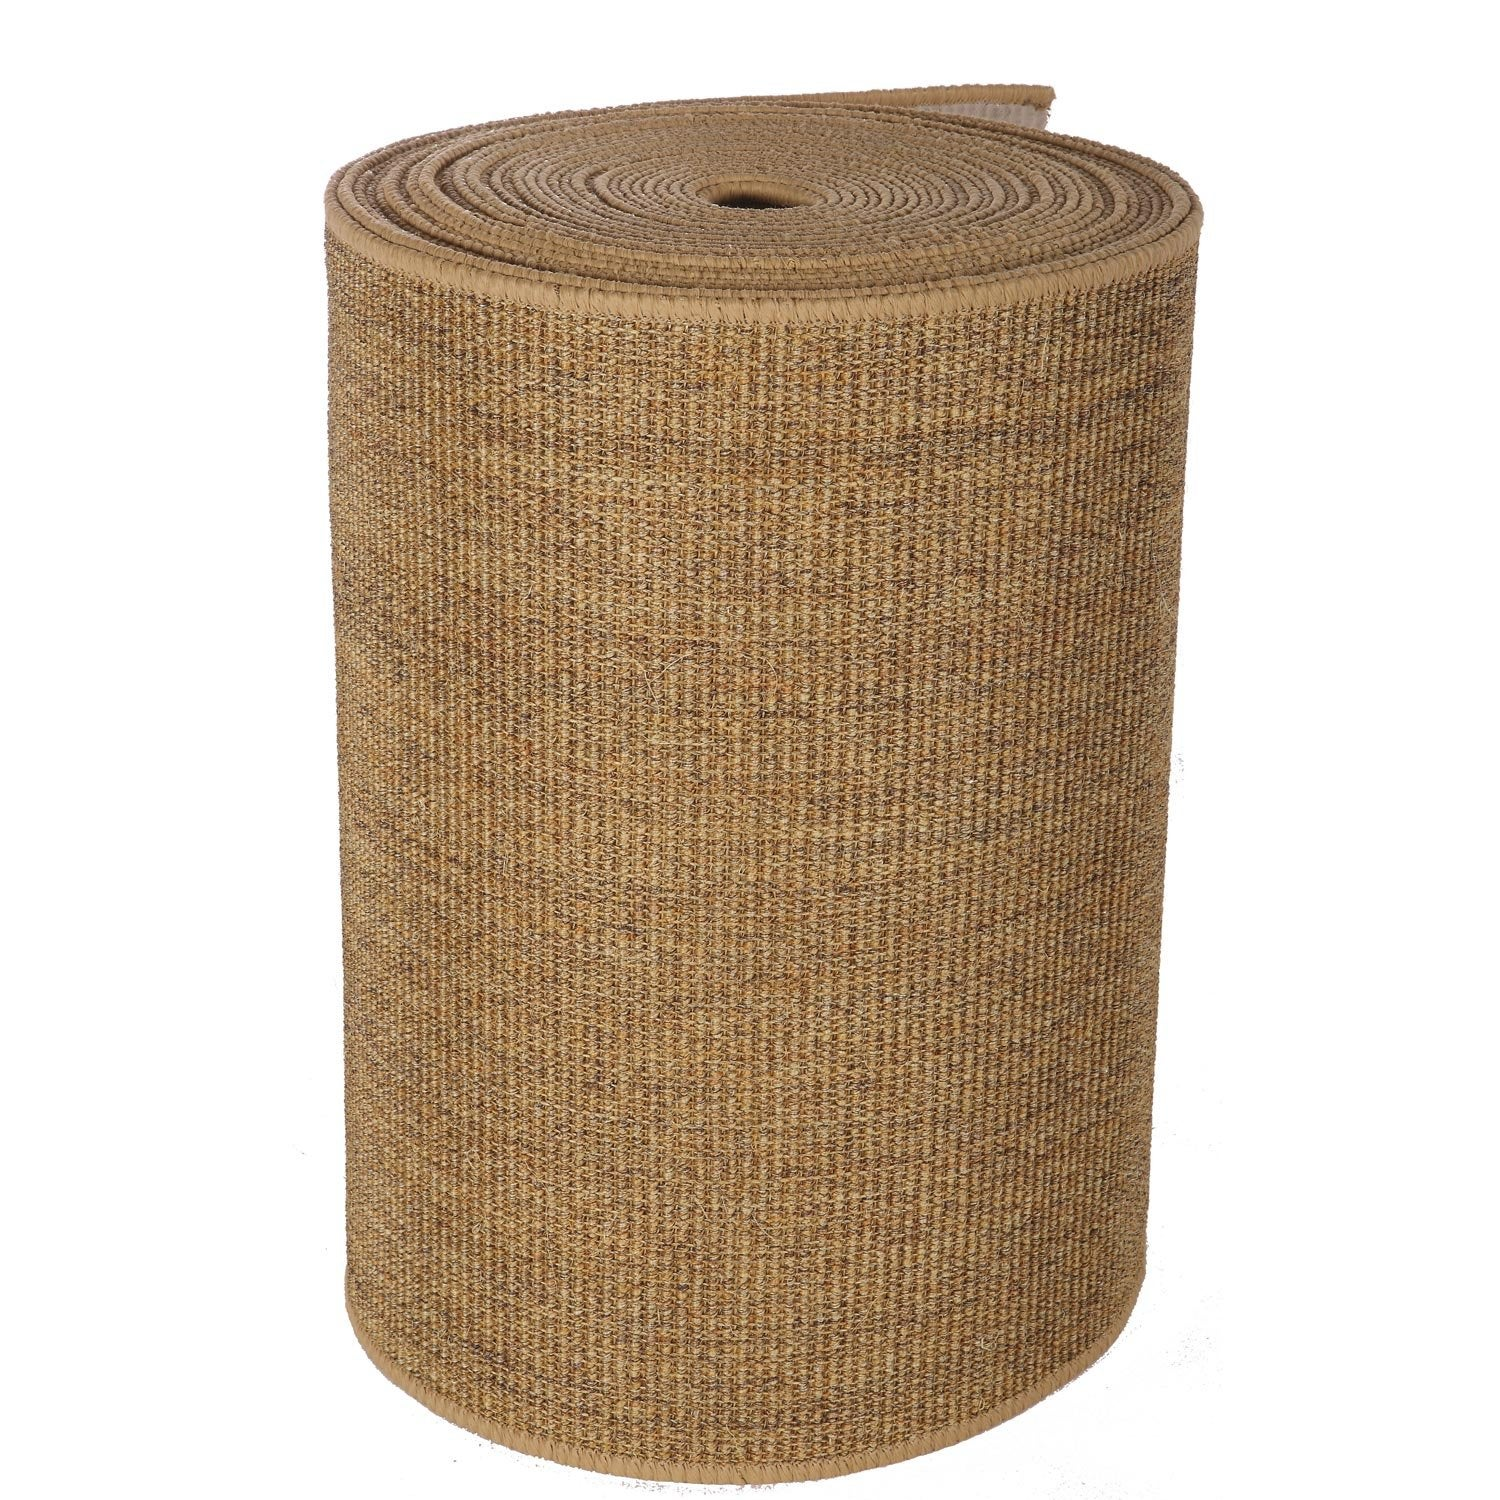 Tapis de passage sisal marron leroy merlin for Moquette coco